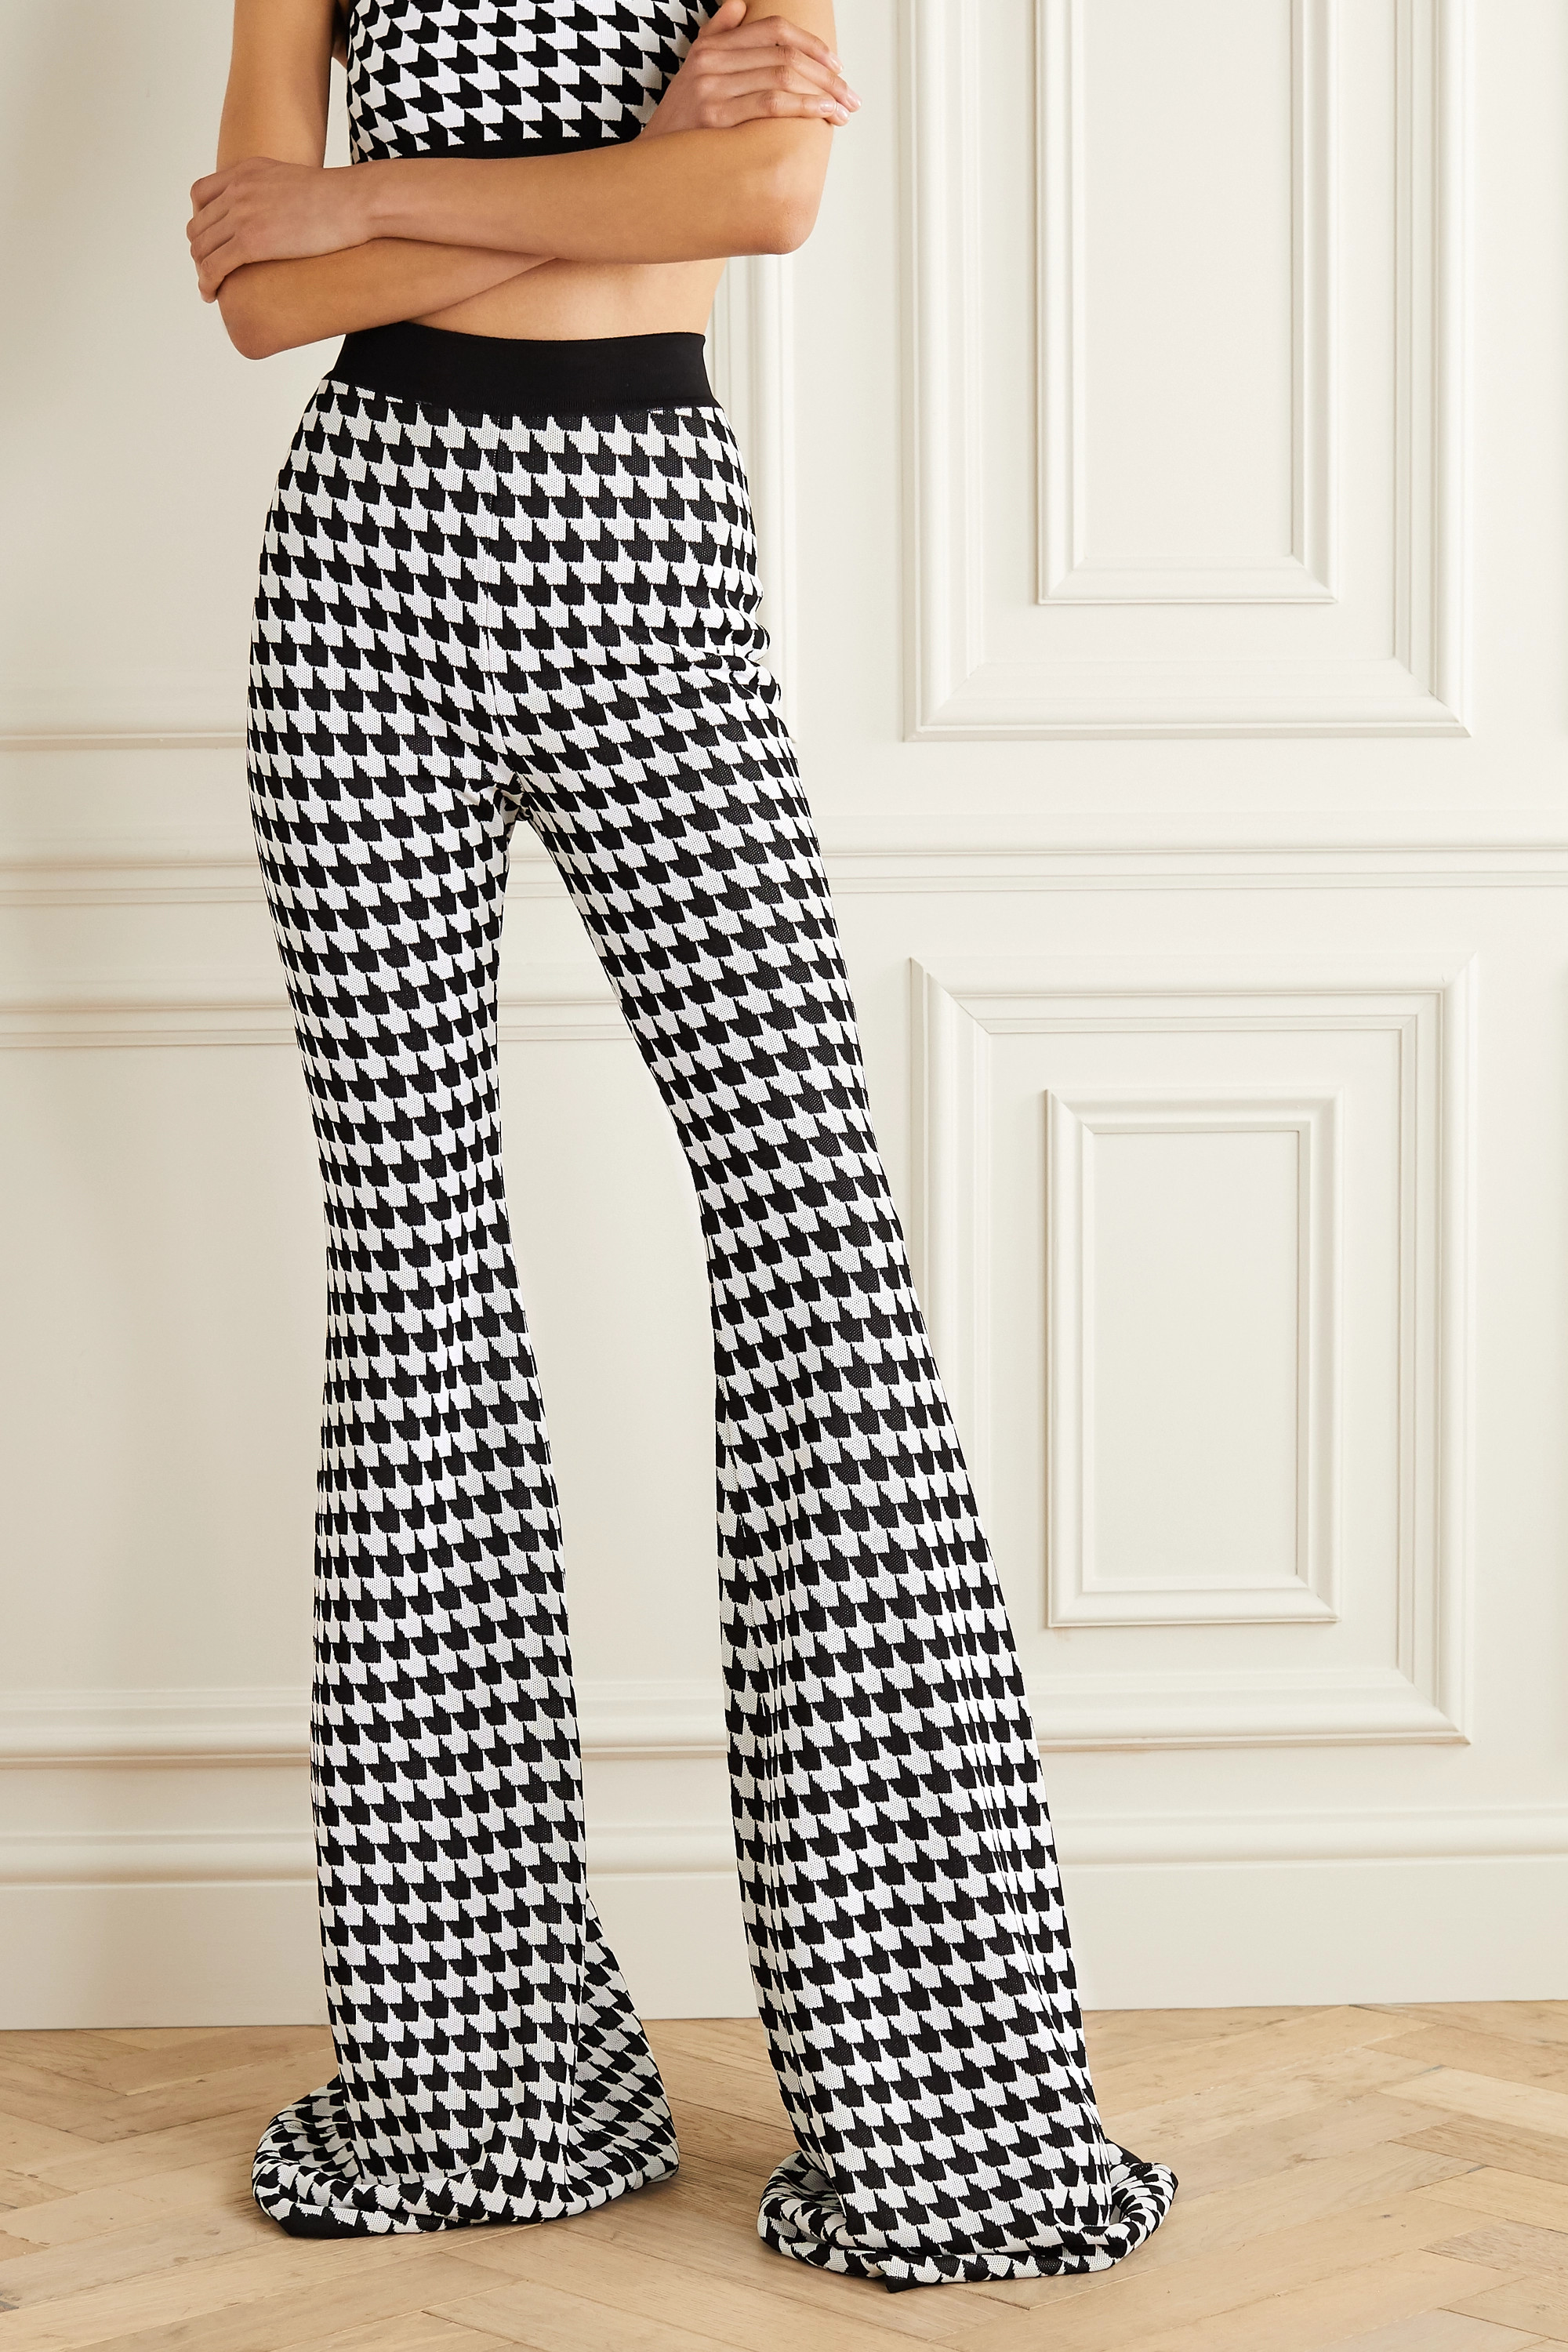 Balmain Houndstooth stretch-knit flared pants